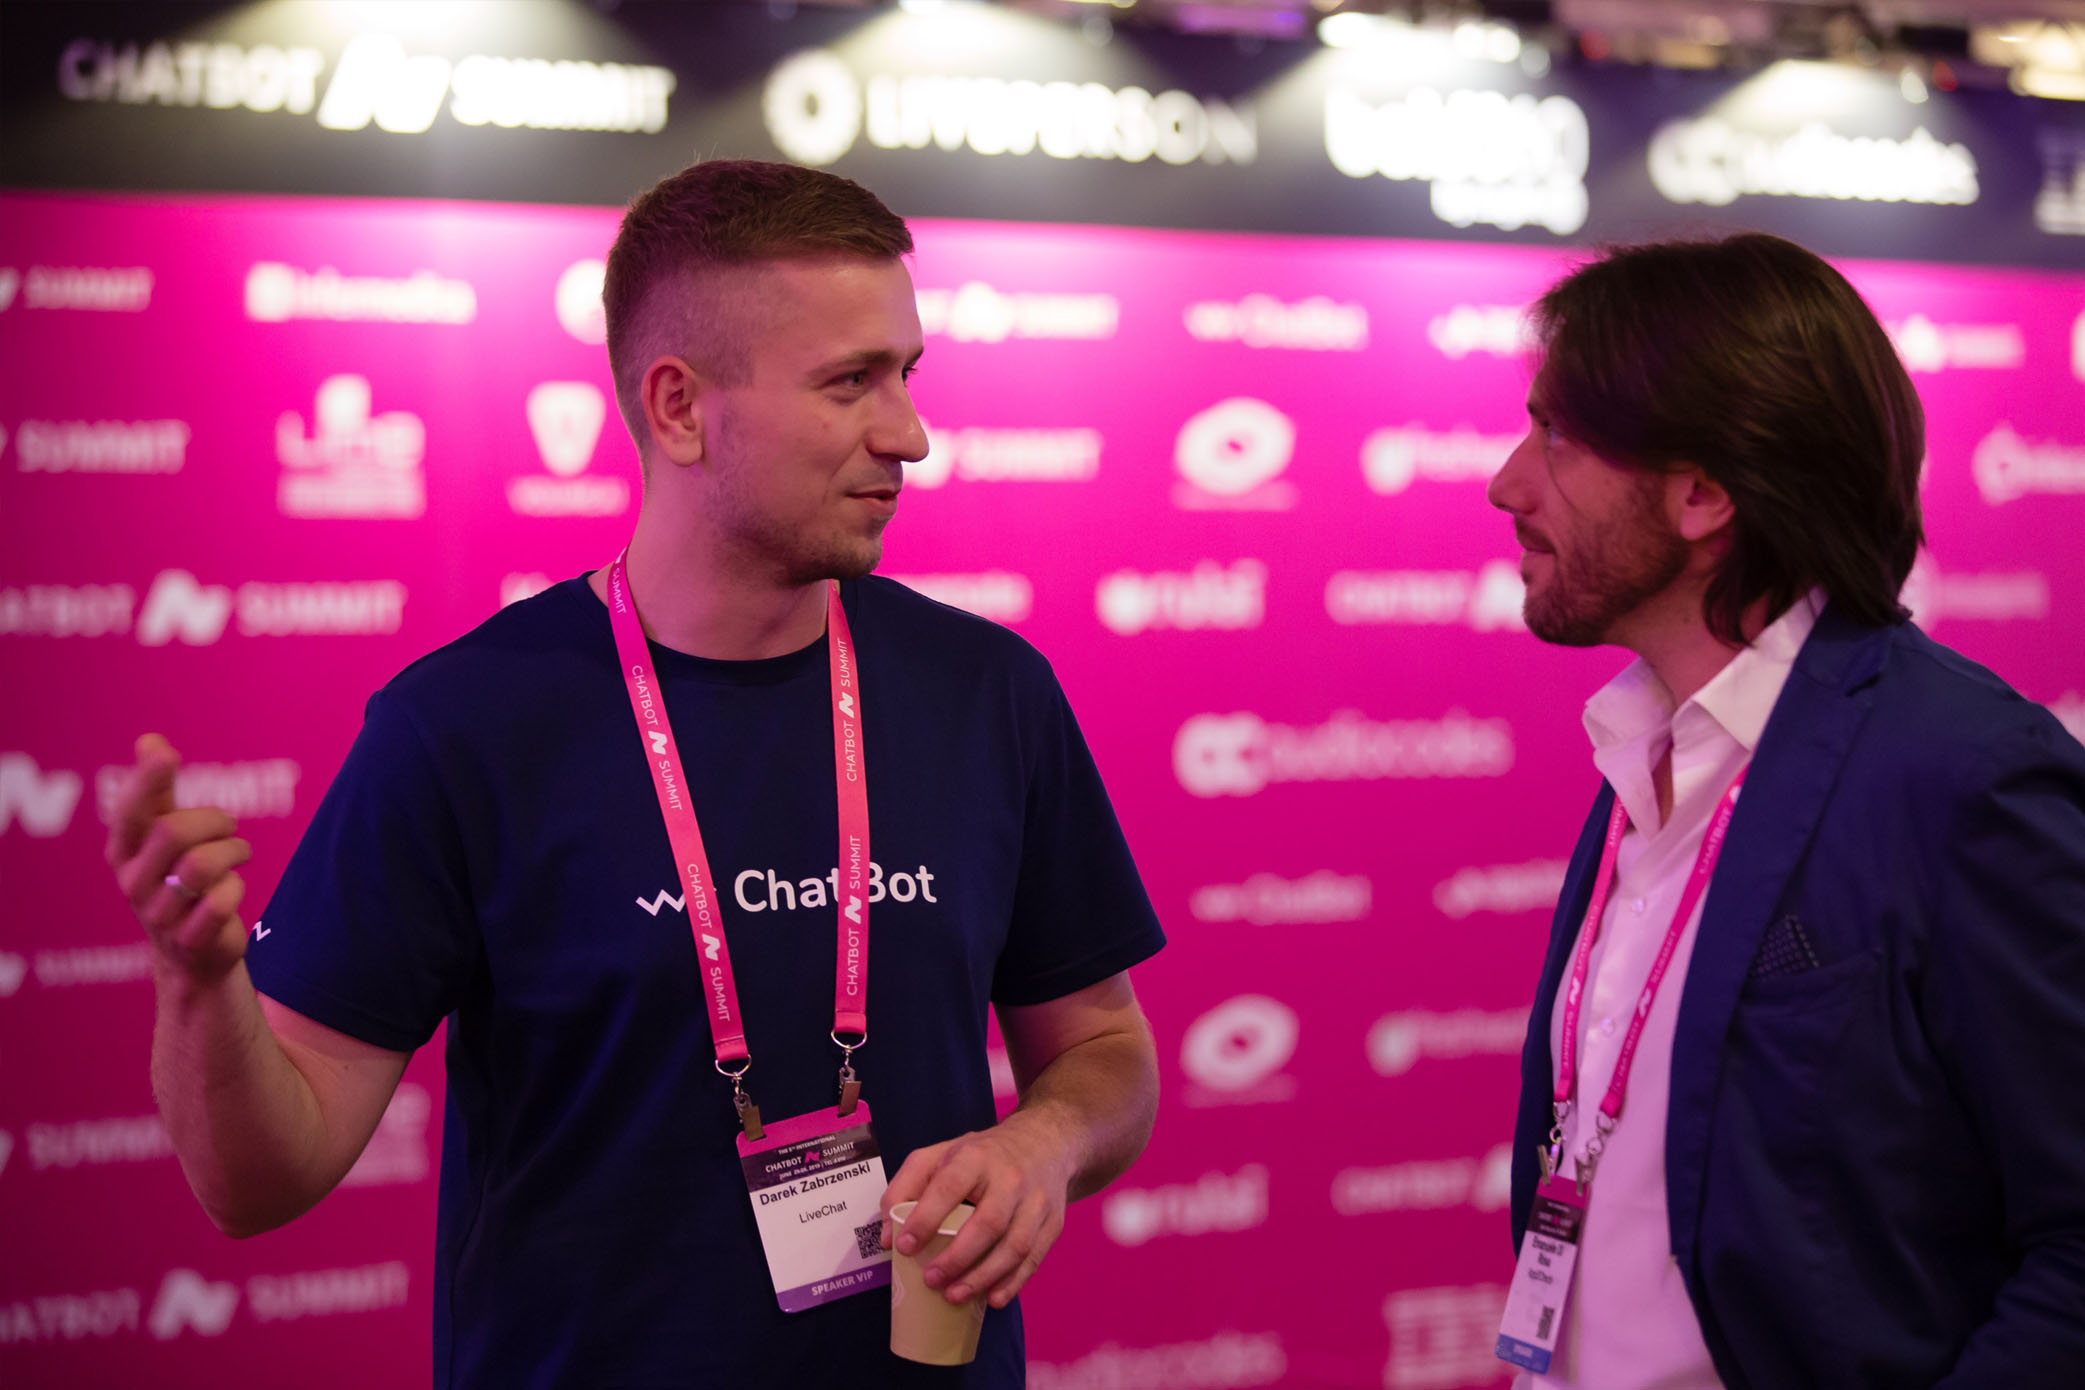 Darek Zabrzeński from ChatBot.com at Chatbot Summit 2019